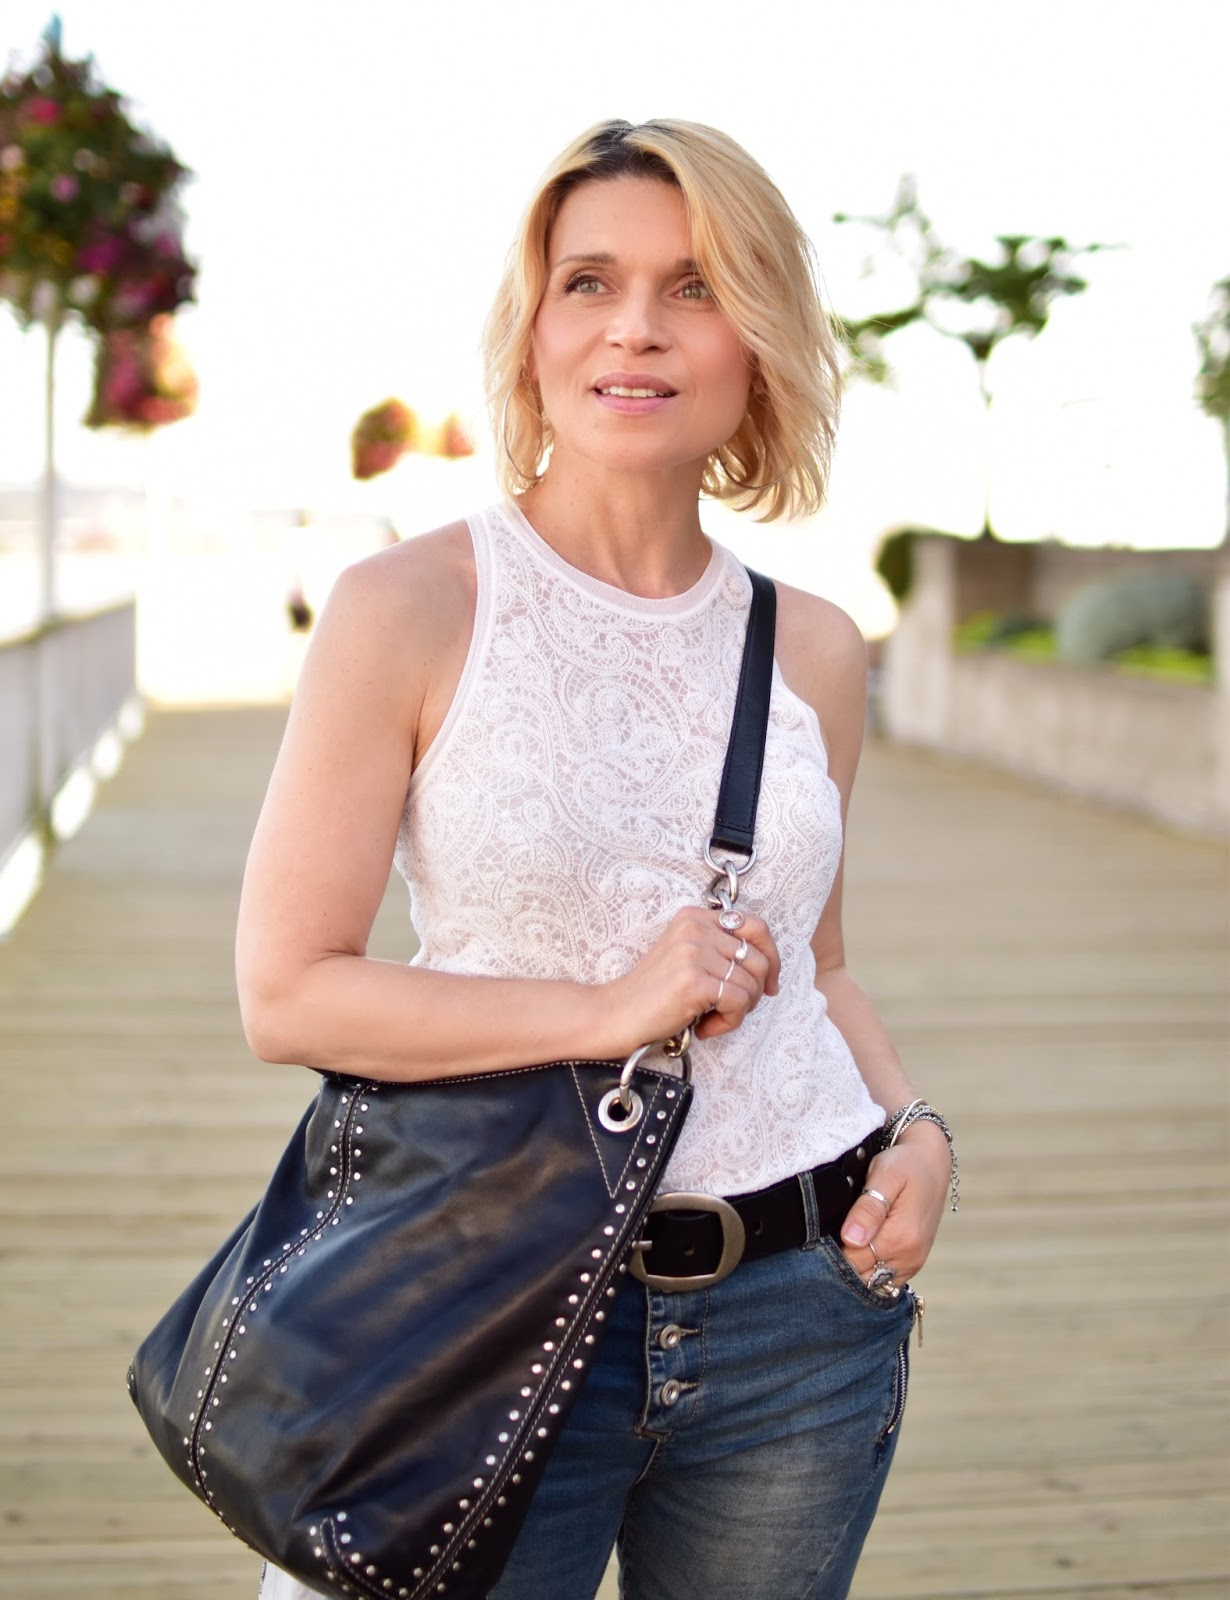 Aritzia lacy tank top, Michael Kors stud-embellished bag